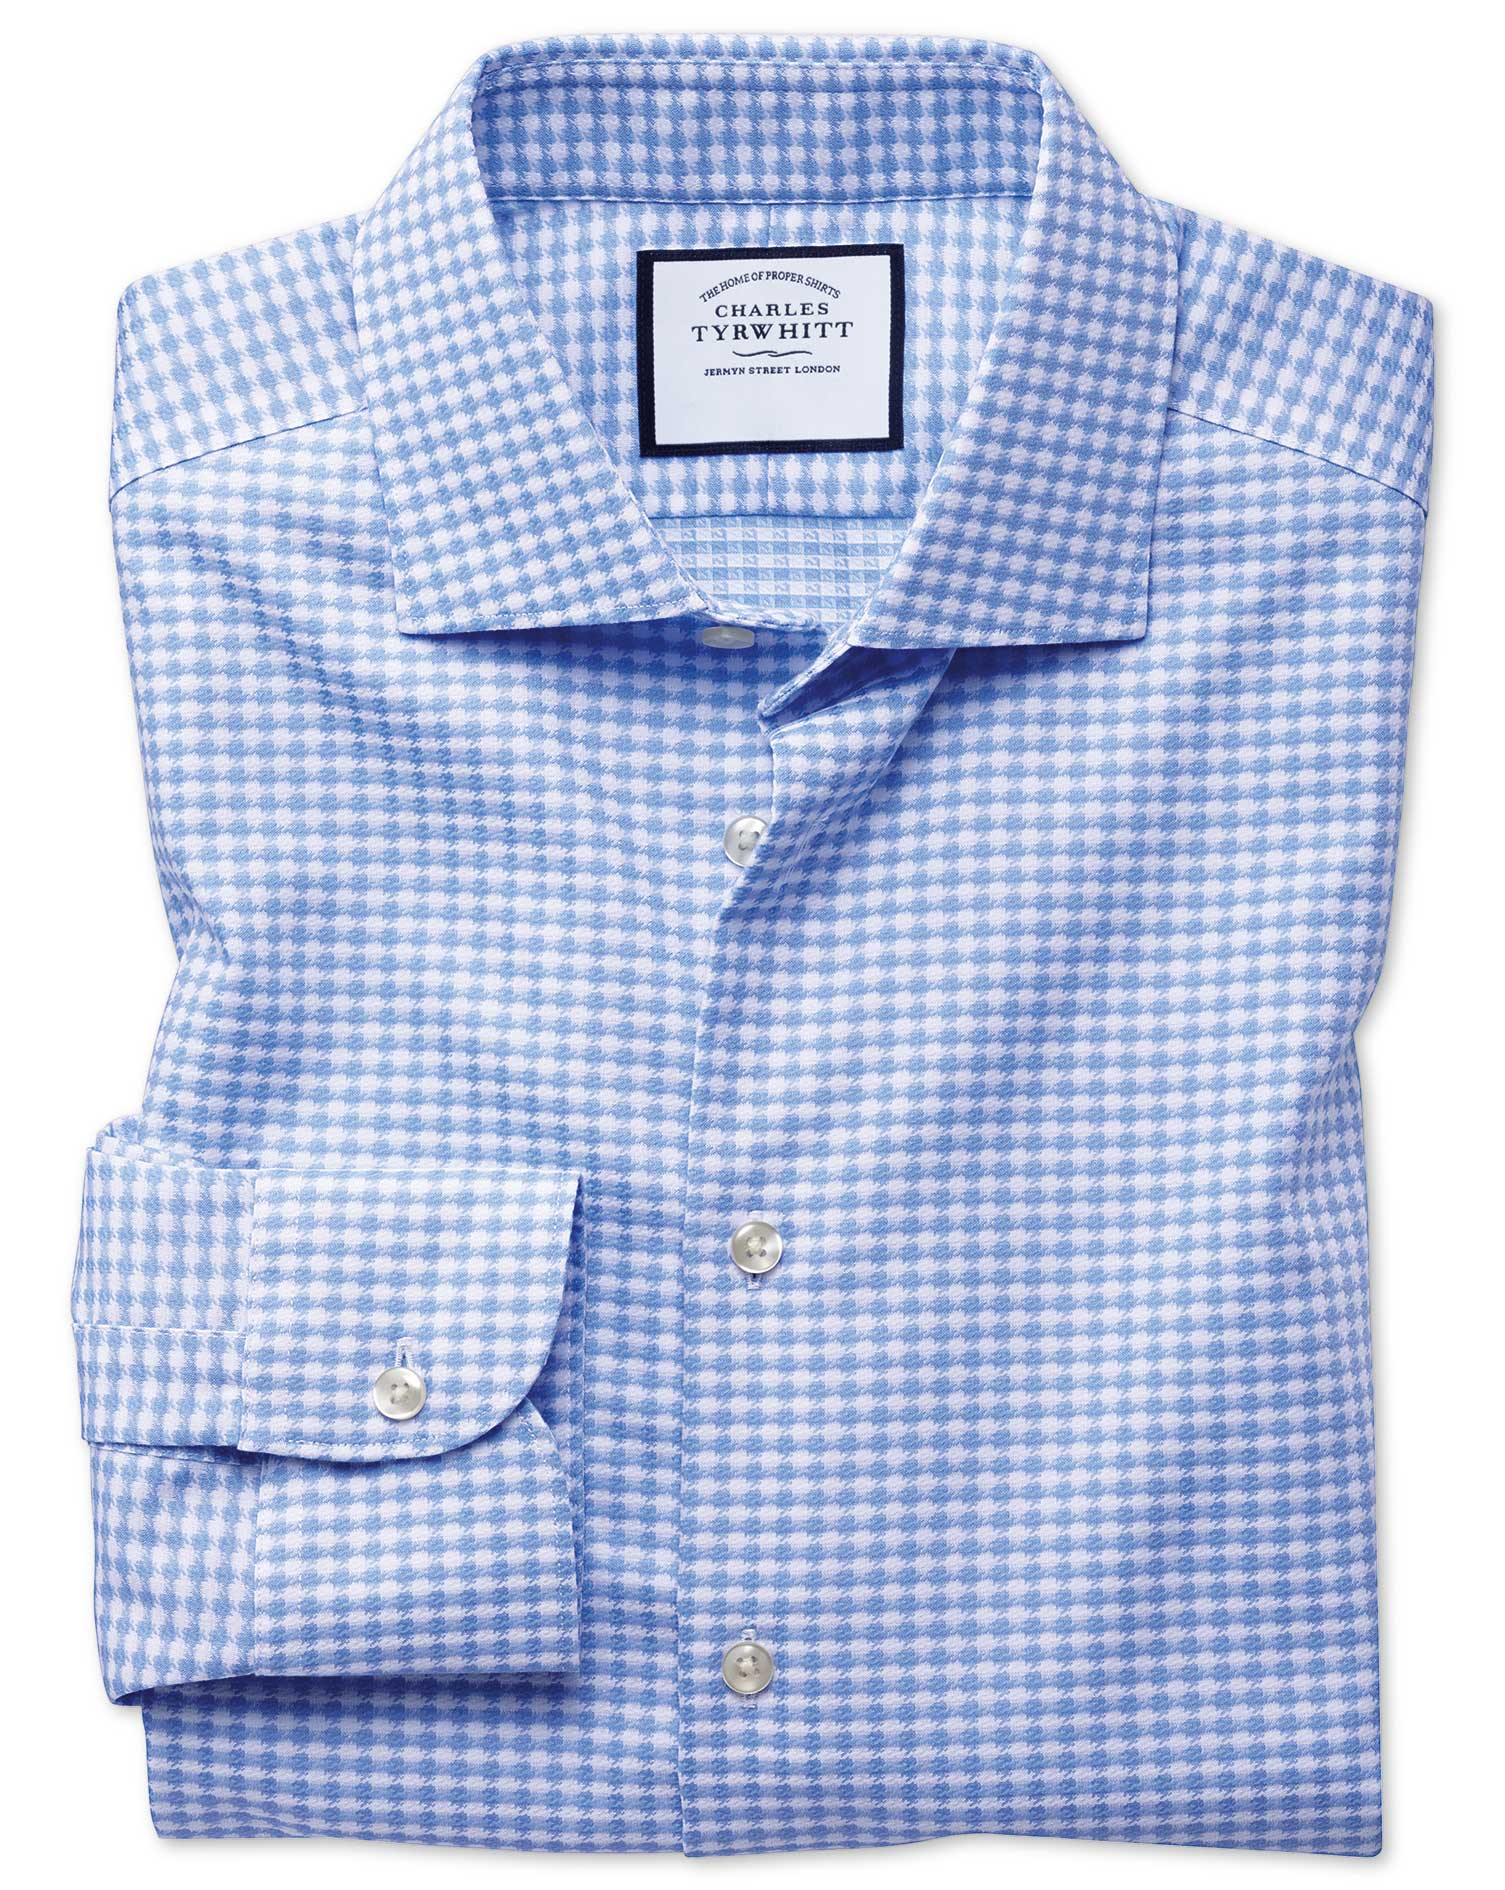 Slim Fit Business Casual Non-Iron Modern Textures Sky Blue Cotton Formal Shirt Single Cuff Size 17.5